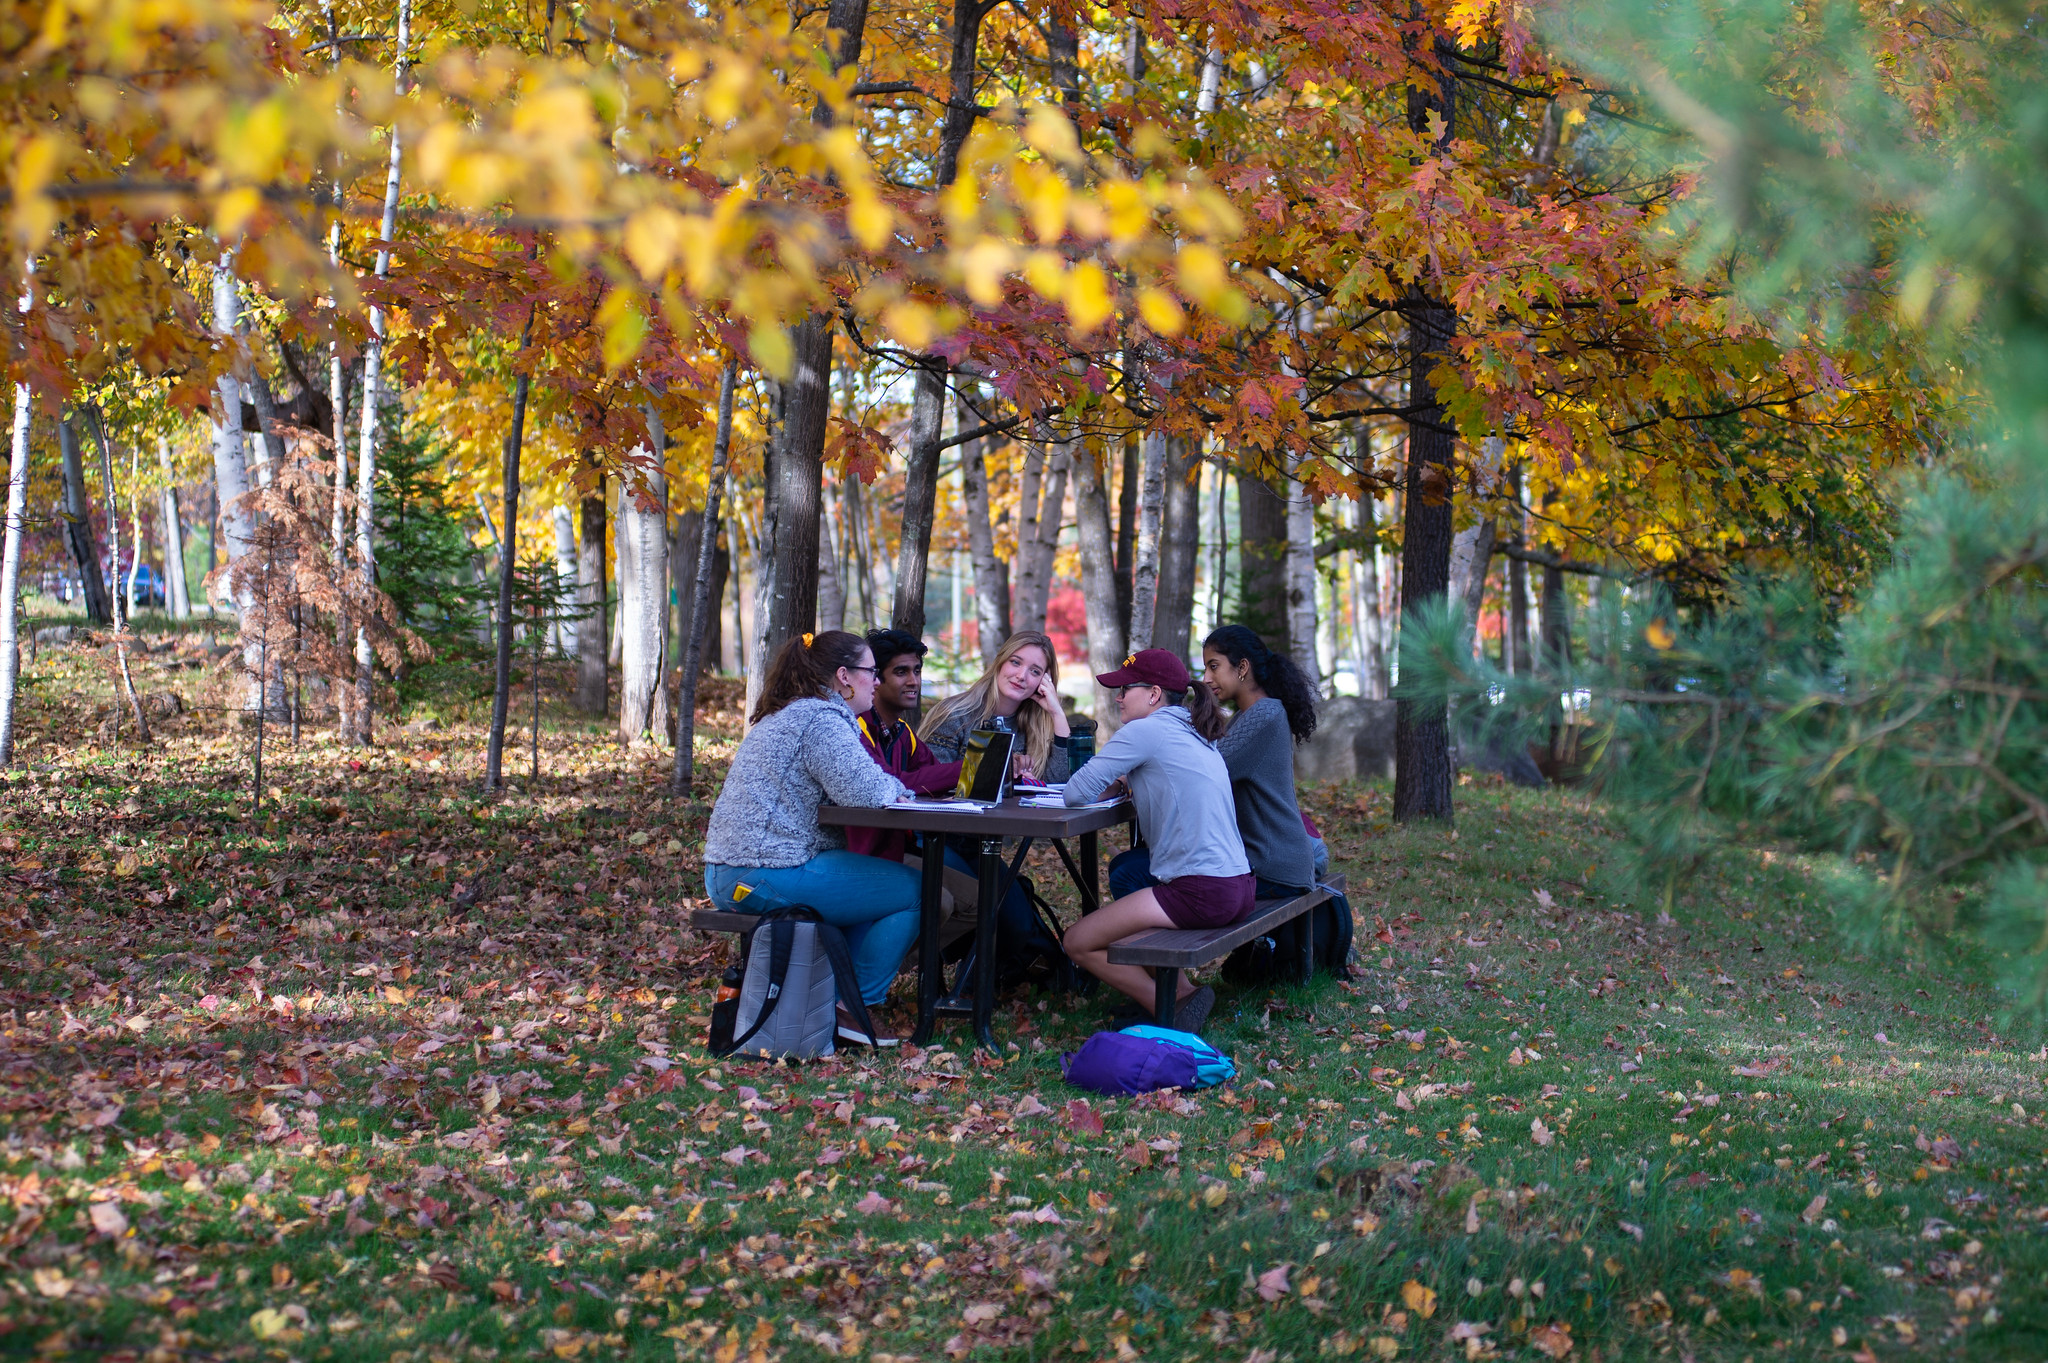 Students sitting at a picnic table on a fall day